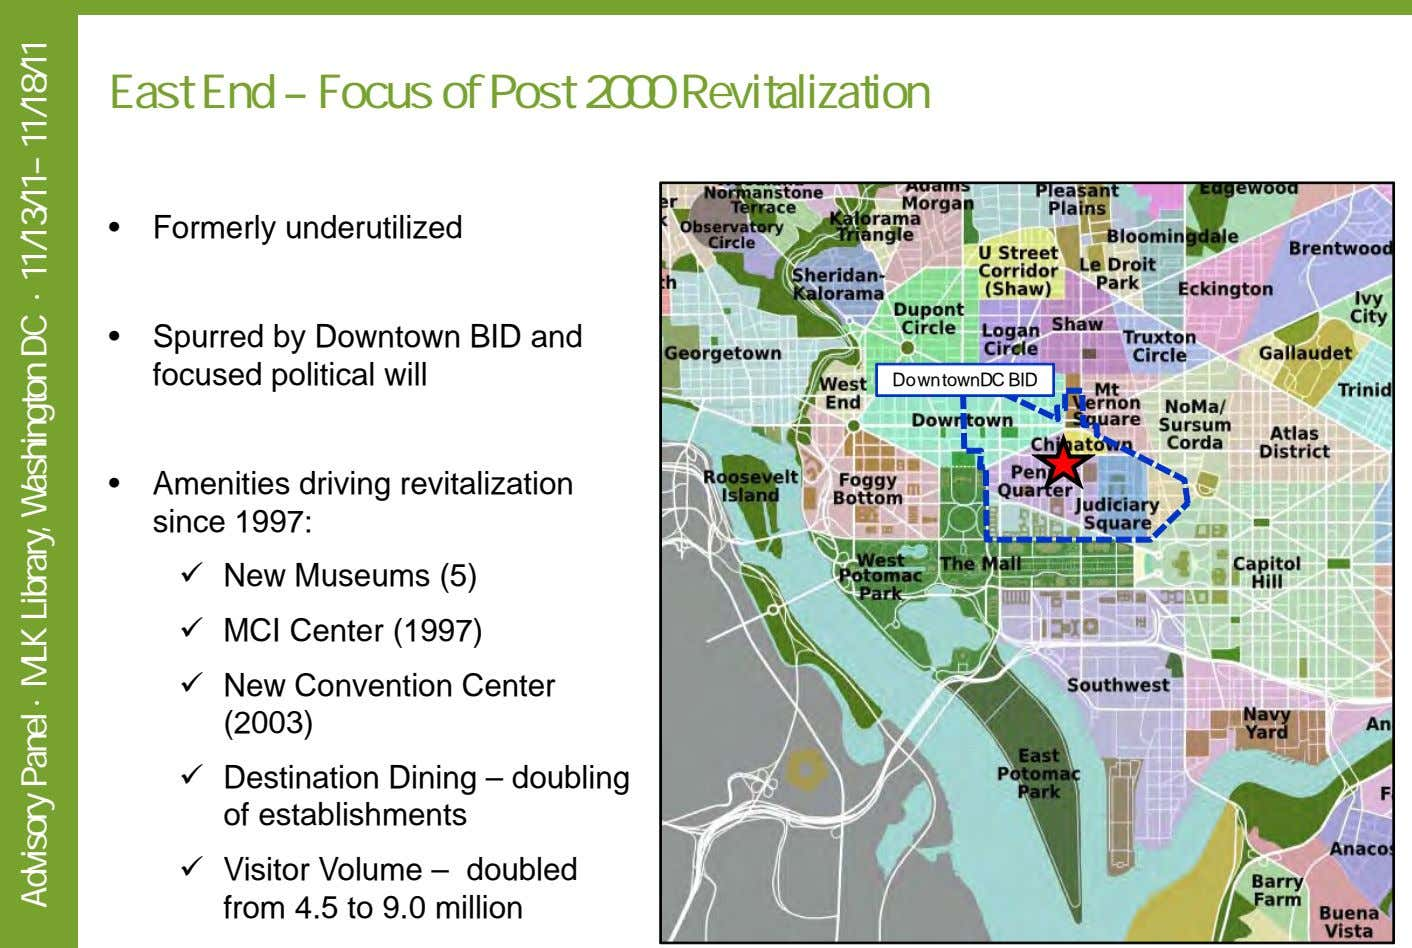 East End – Focus of Post 2000 Revitalization • Formerly underutilized • Spurred by Downtown